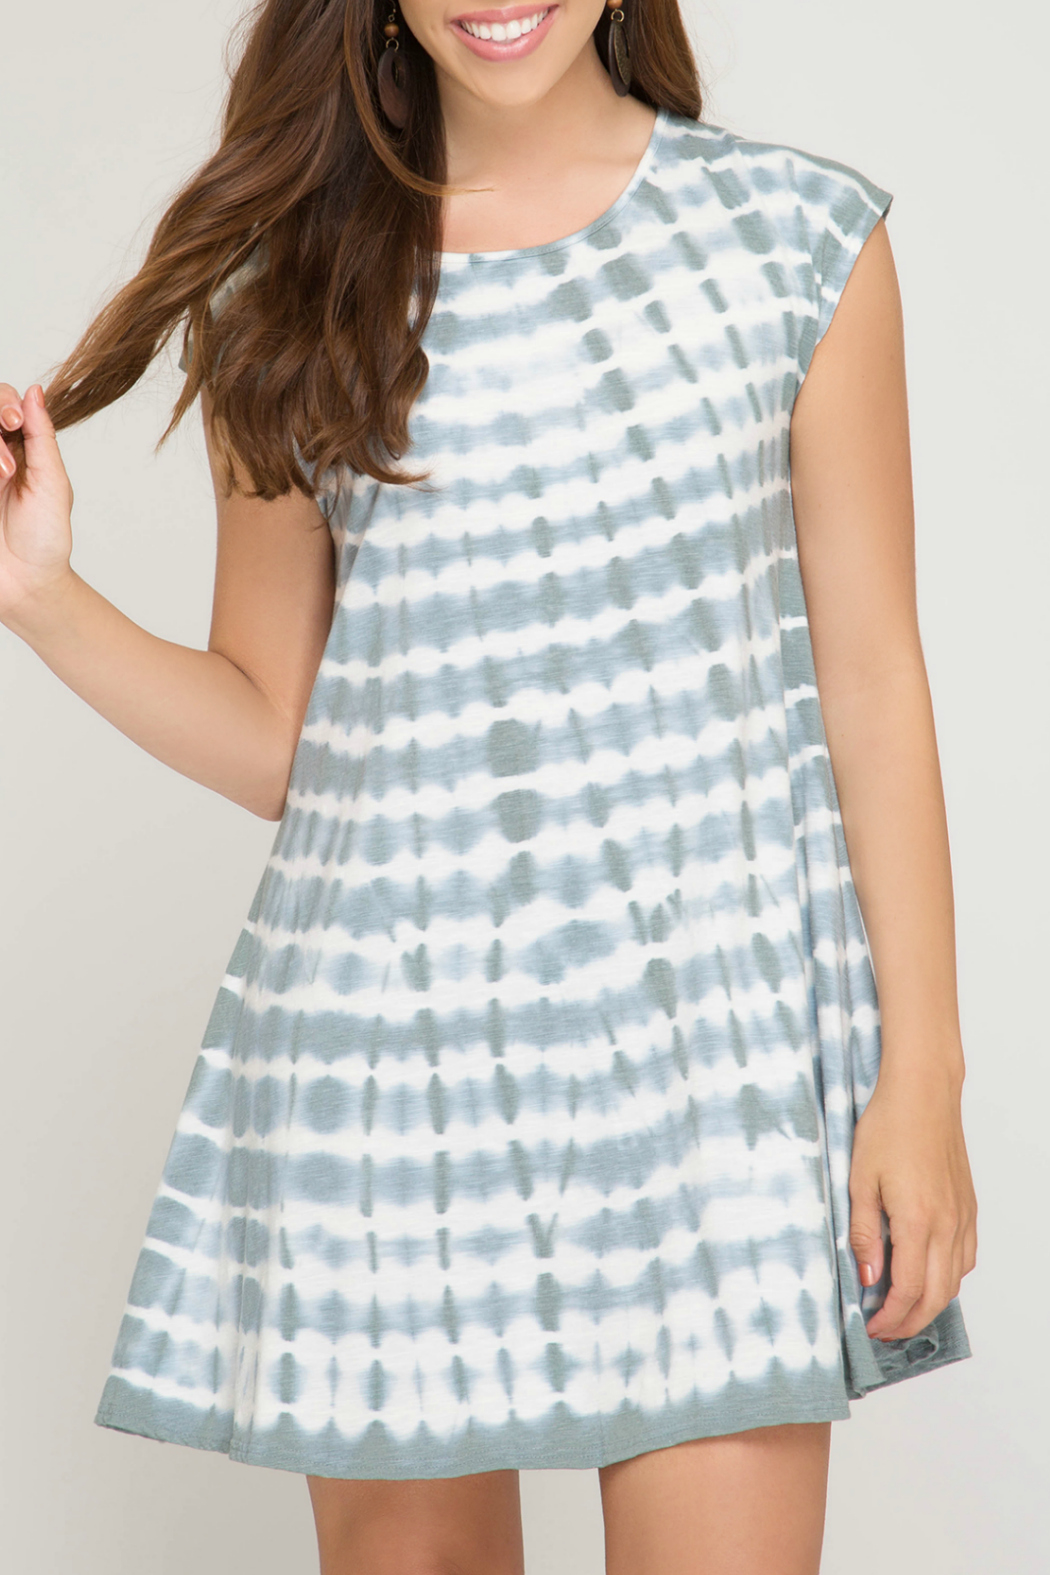 She + Sky Tie Dye Dress w Back Strap Detail - Main Image